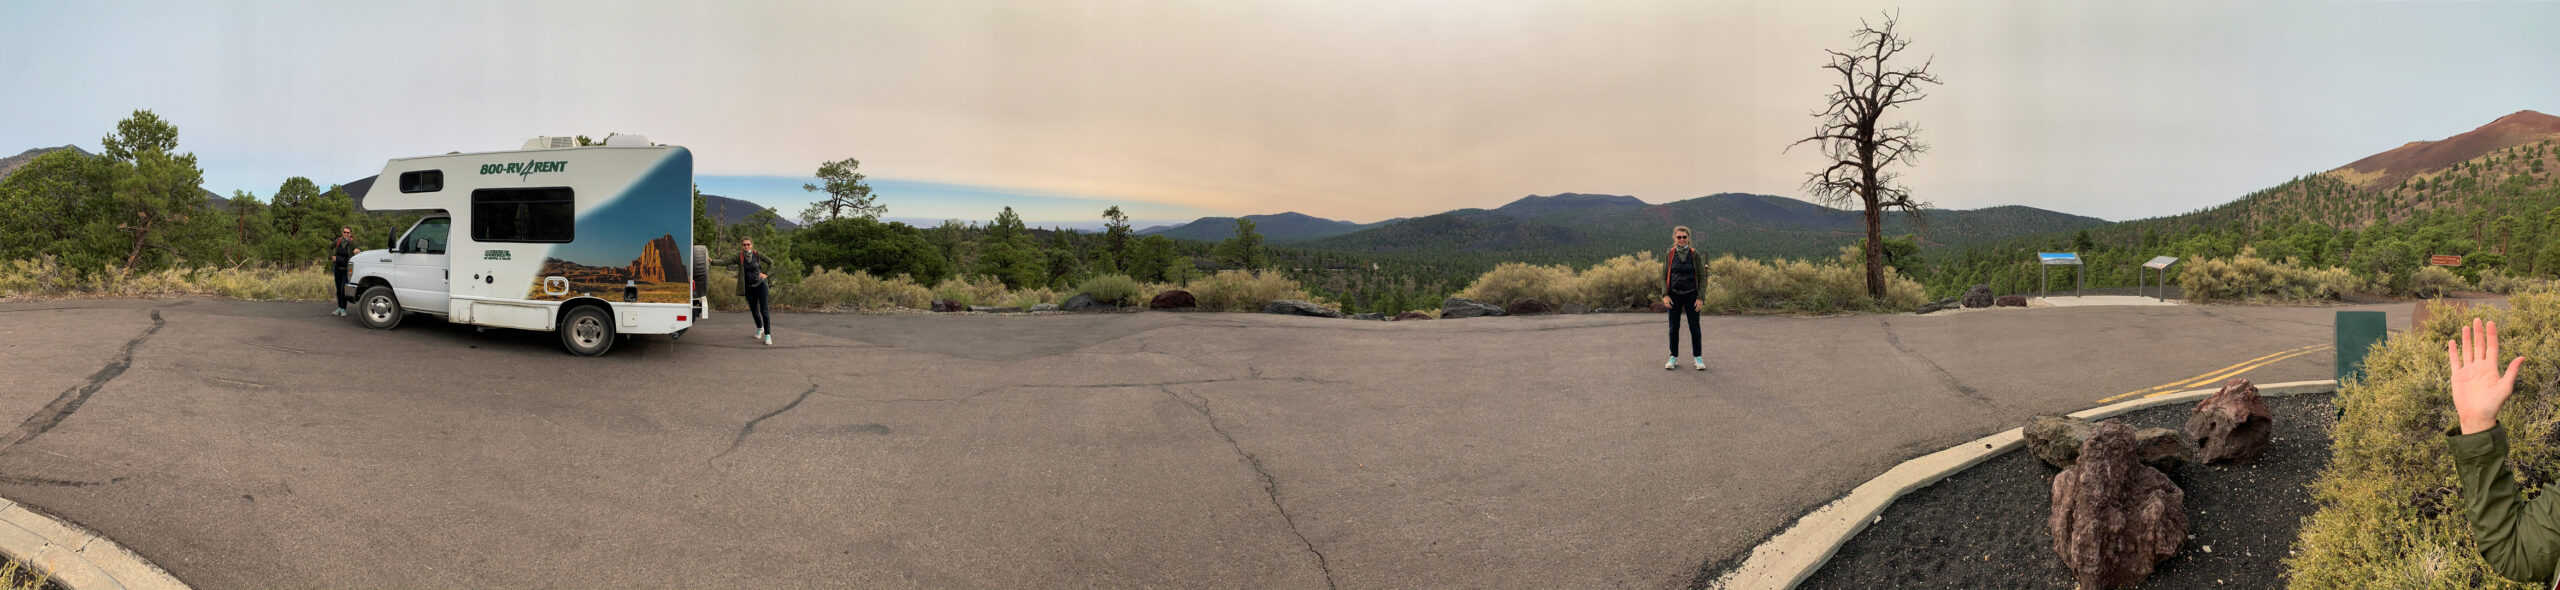 Pano of RV at viewpoint with Karin in it four times